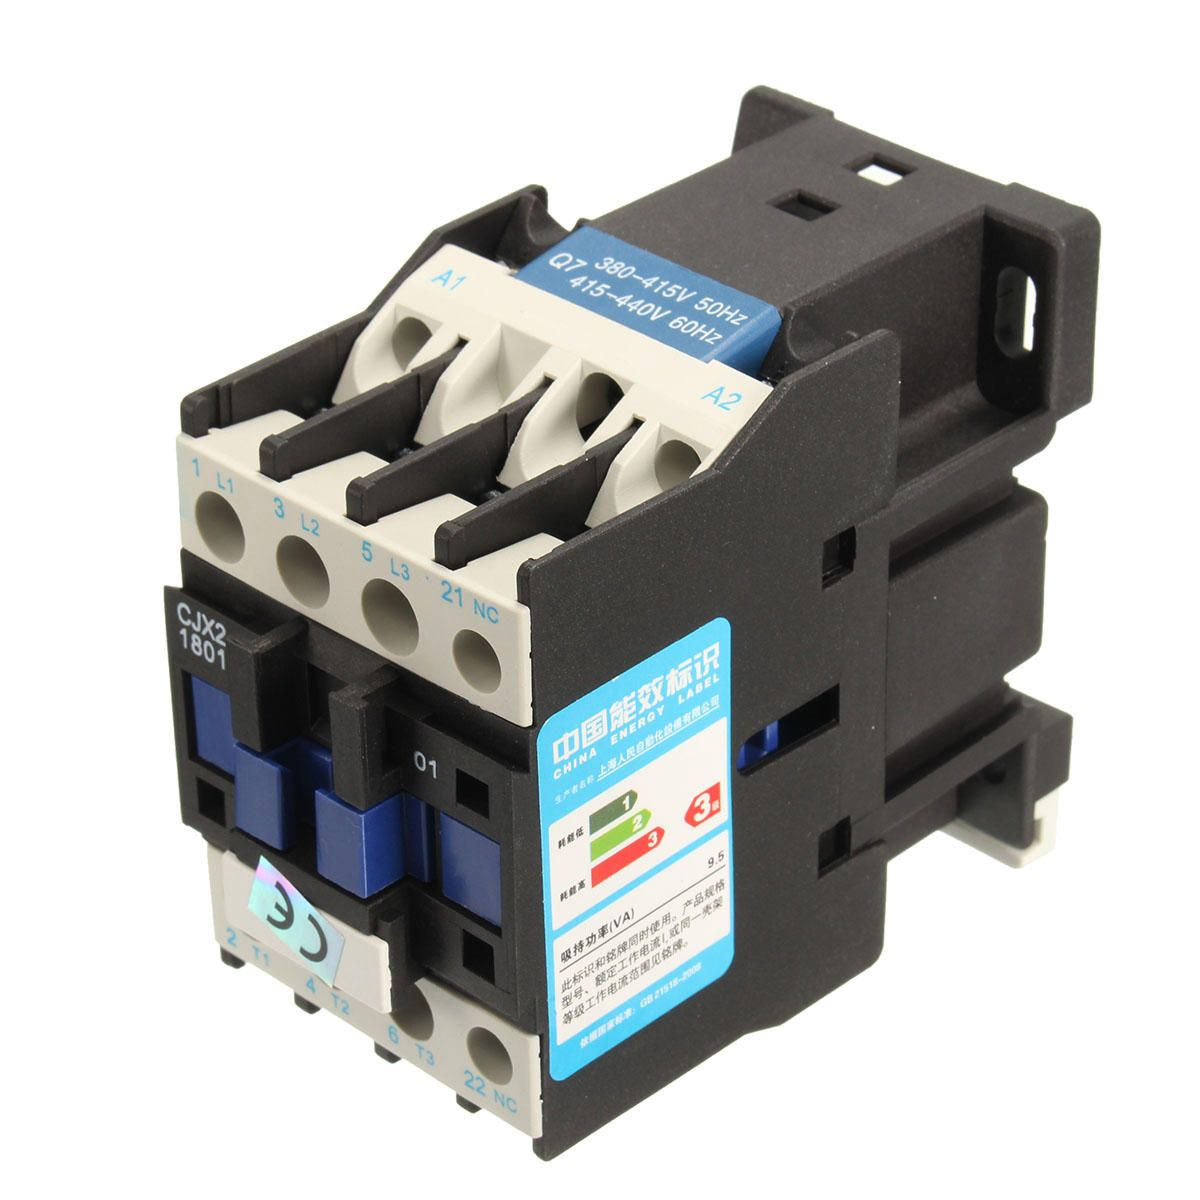 GDM US$12.76 CJX2-1801 AC 220V/380V 18A Contactor Motor Starter Relay 3 POLE+1NC COIL 4KW 7.5KW